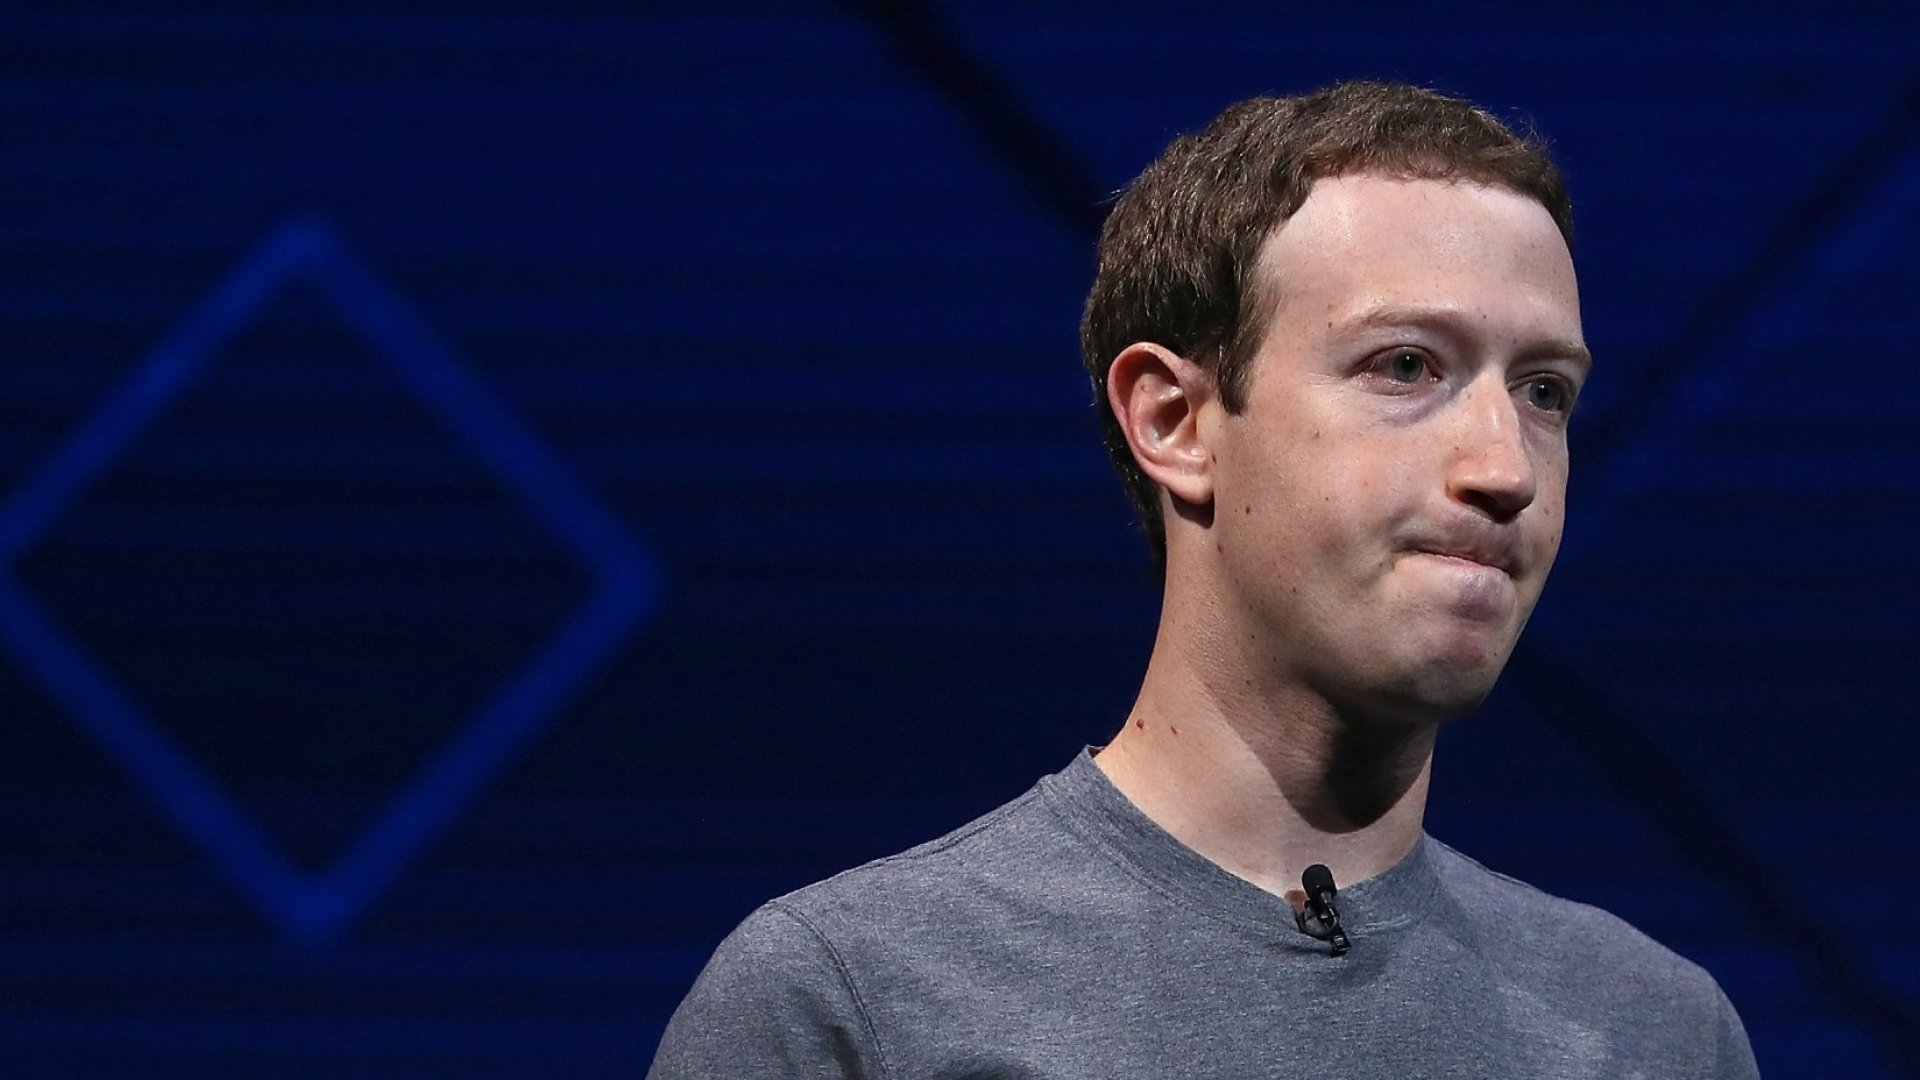 Facebook Just Lost Another Key Employee and Admitted It's Listening to Users. Here's Why the Bad News Keeps Getting Worse